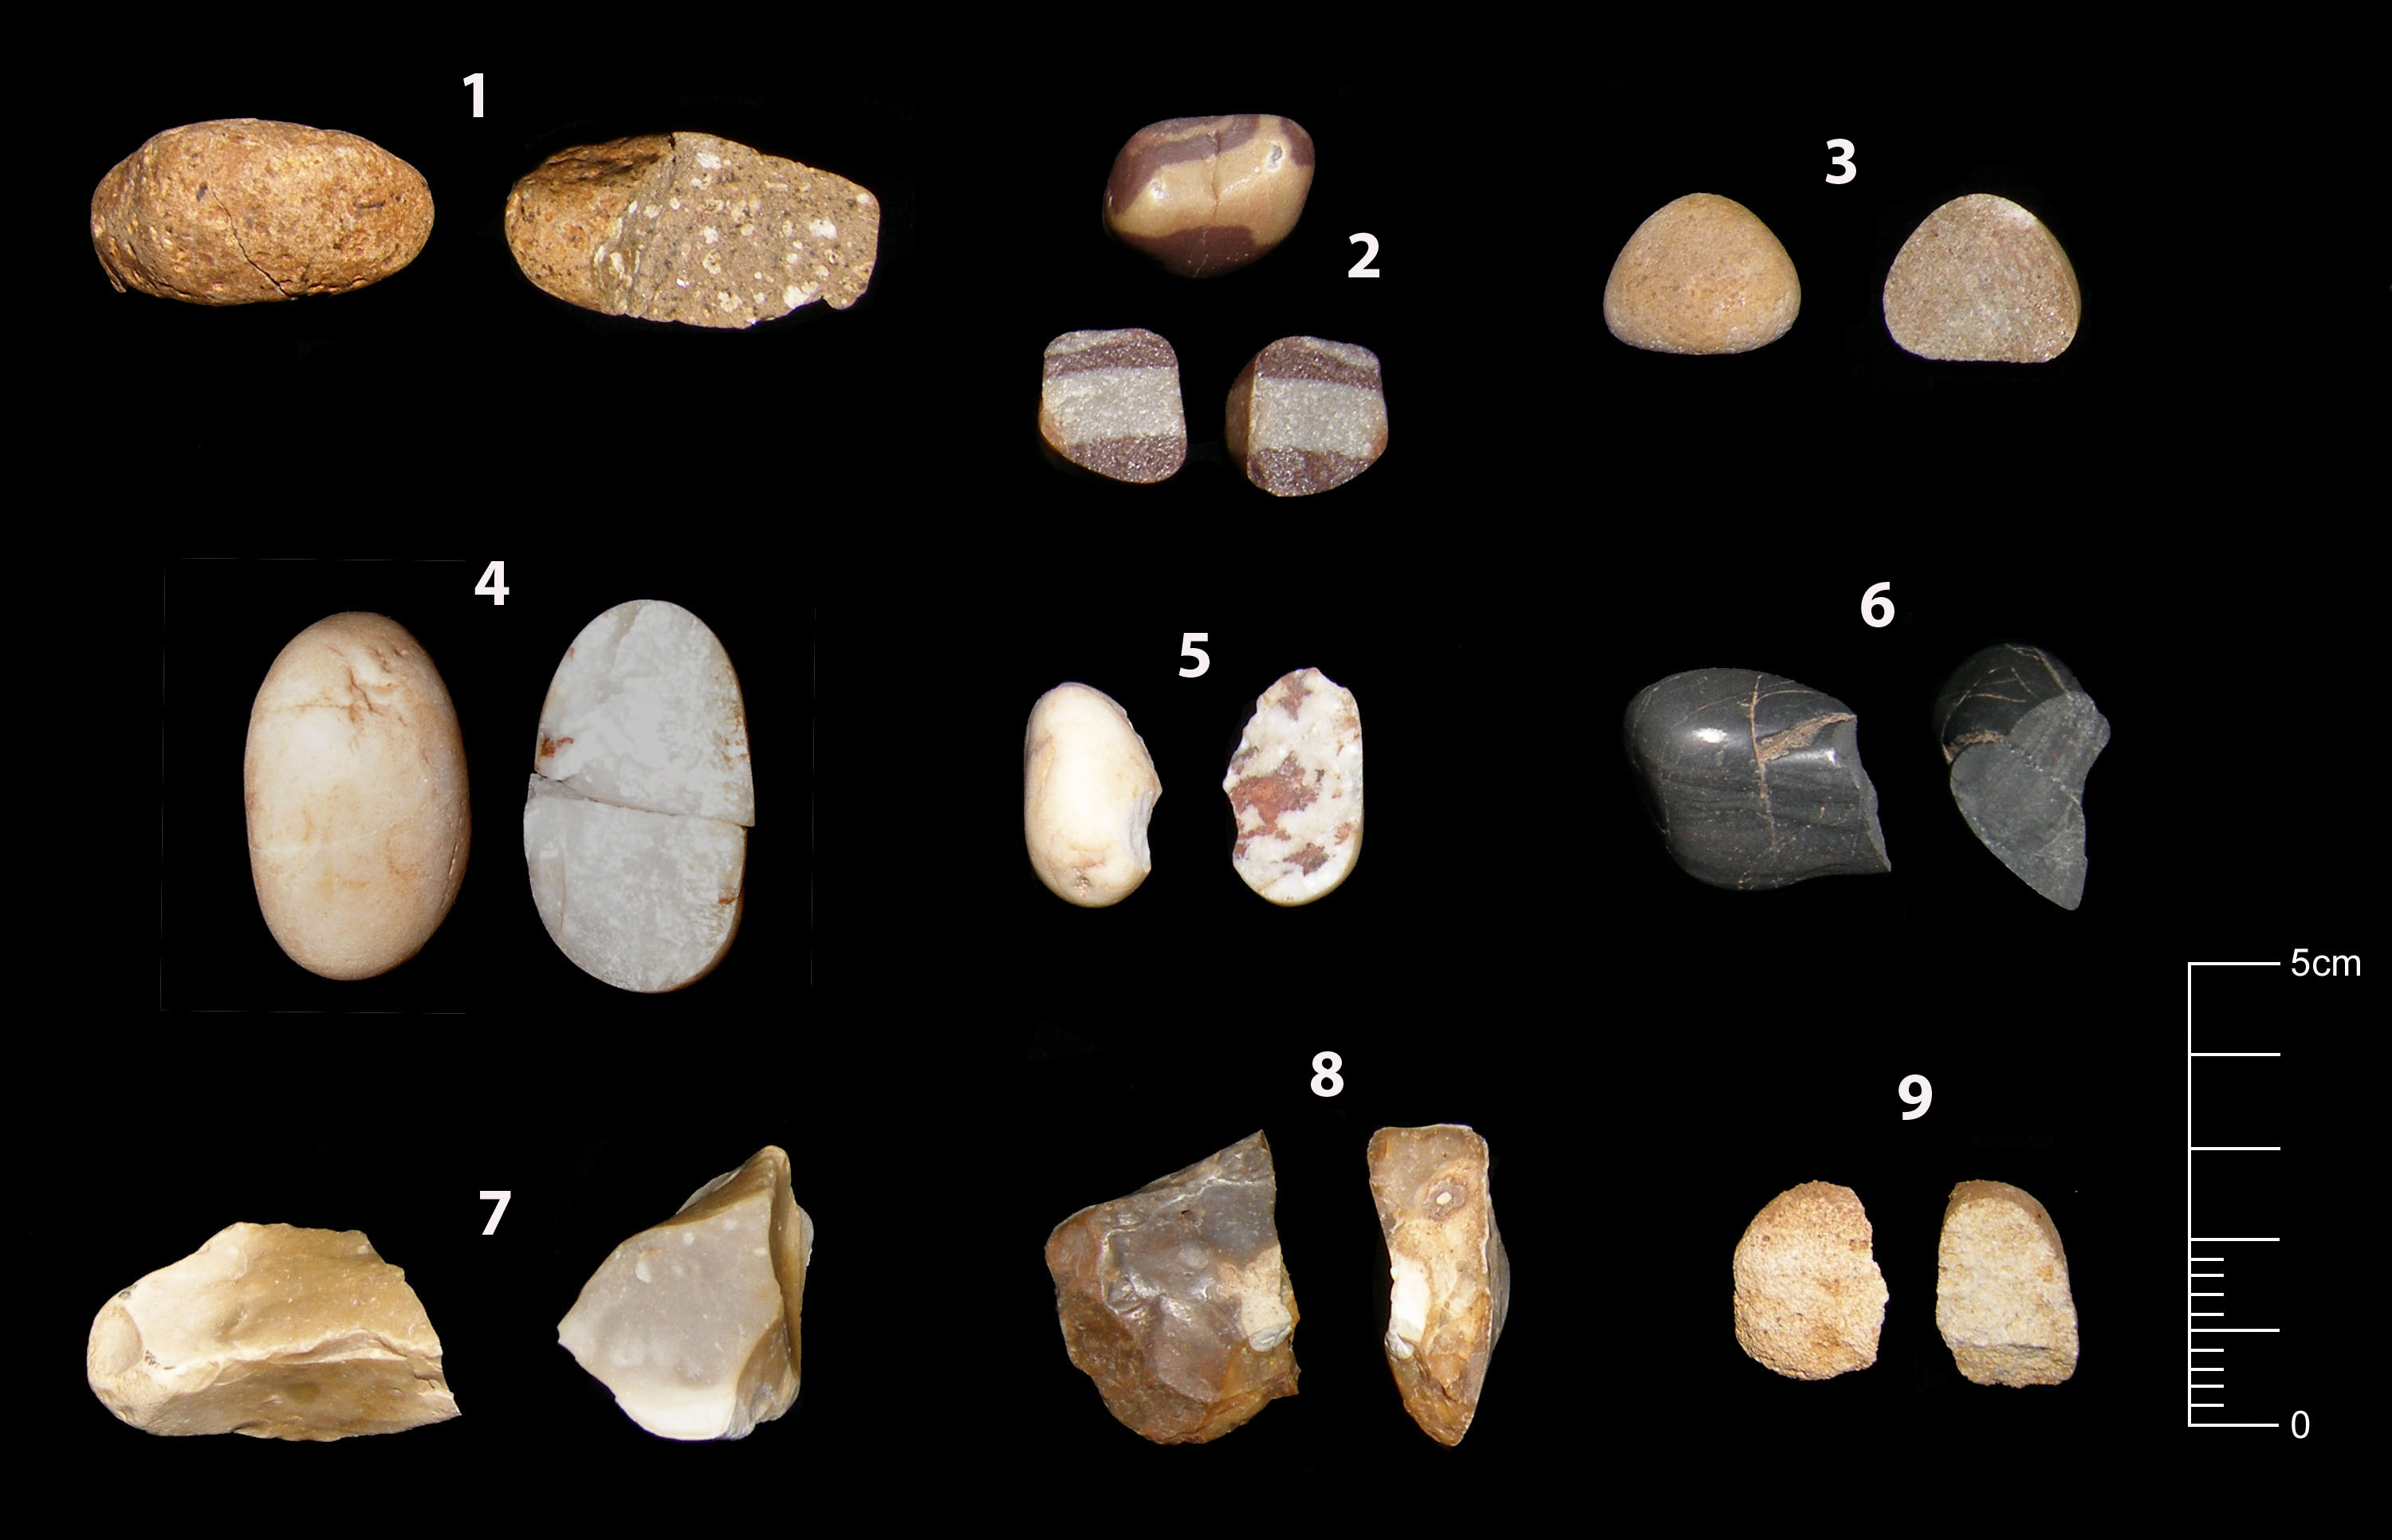 A photo composite showing nine different types of stone, of different colours, textures and shapes.